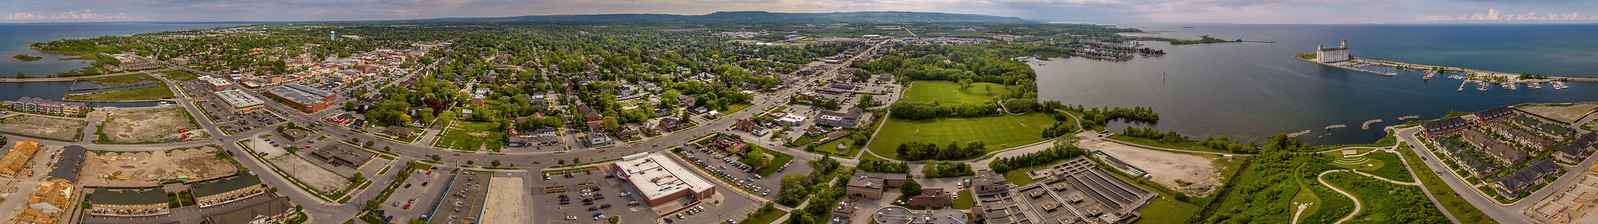 Collingwood ontario 360 panorama